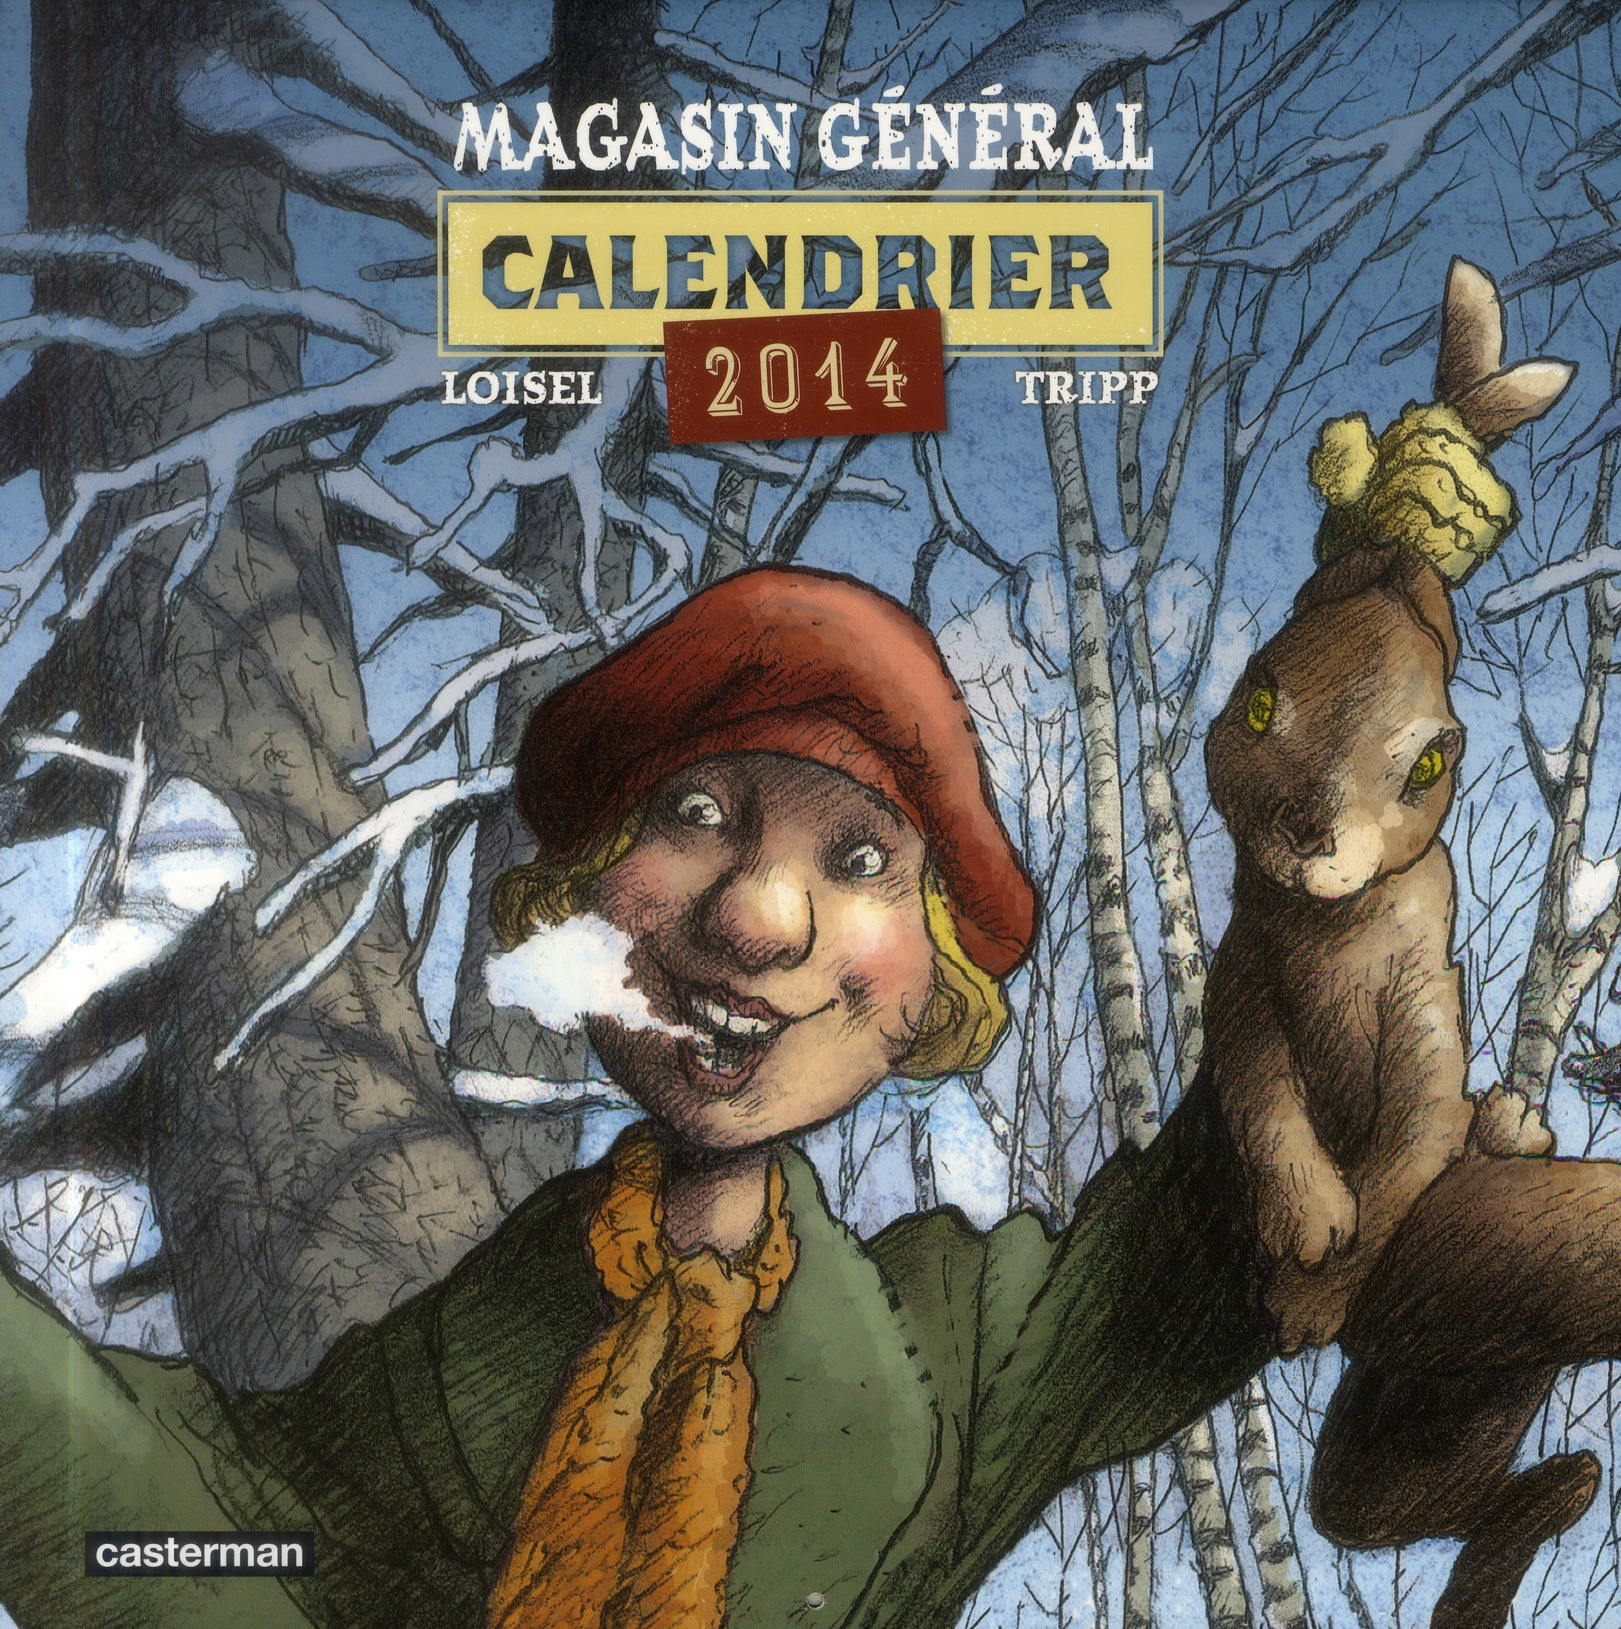 CALENDRIER MAGASIN GENERAL 2014